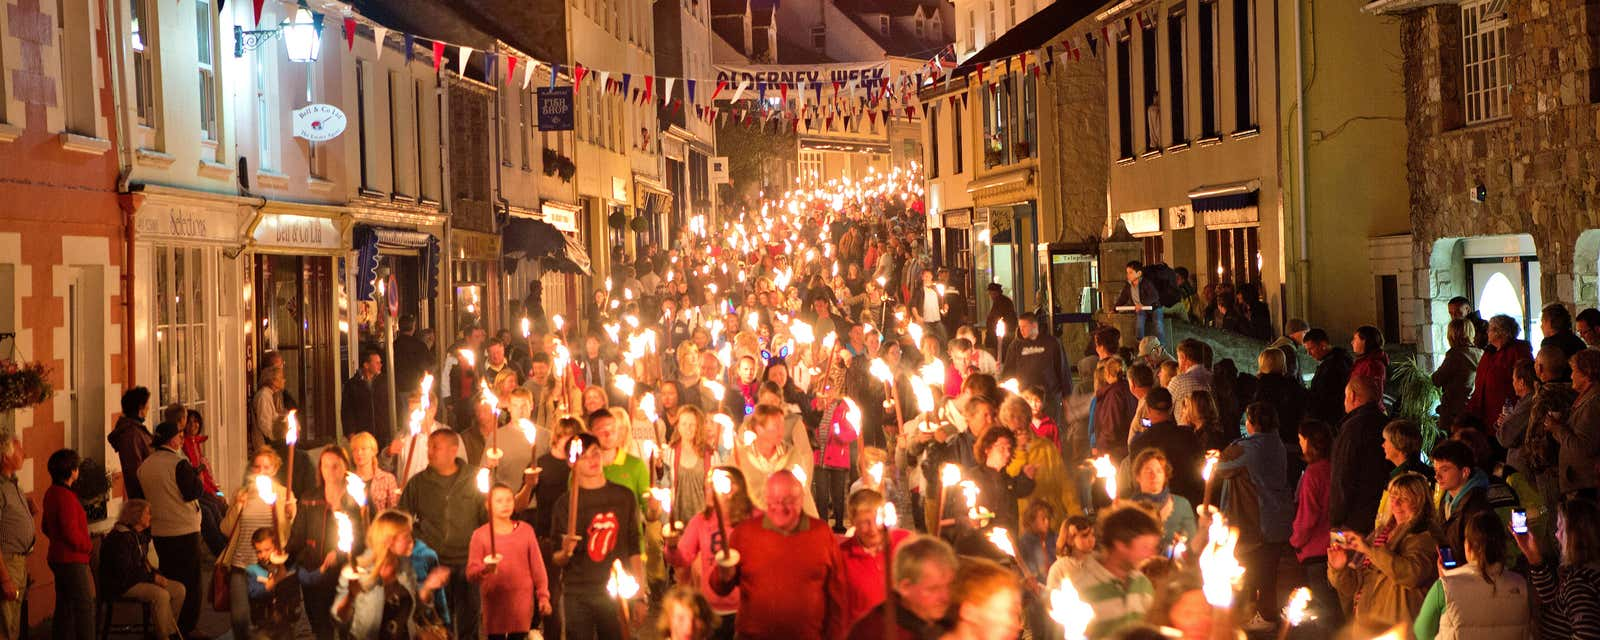 A torchlit procession through Alderney in the Channel Islands.